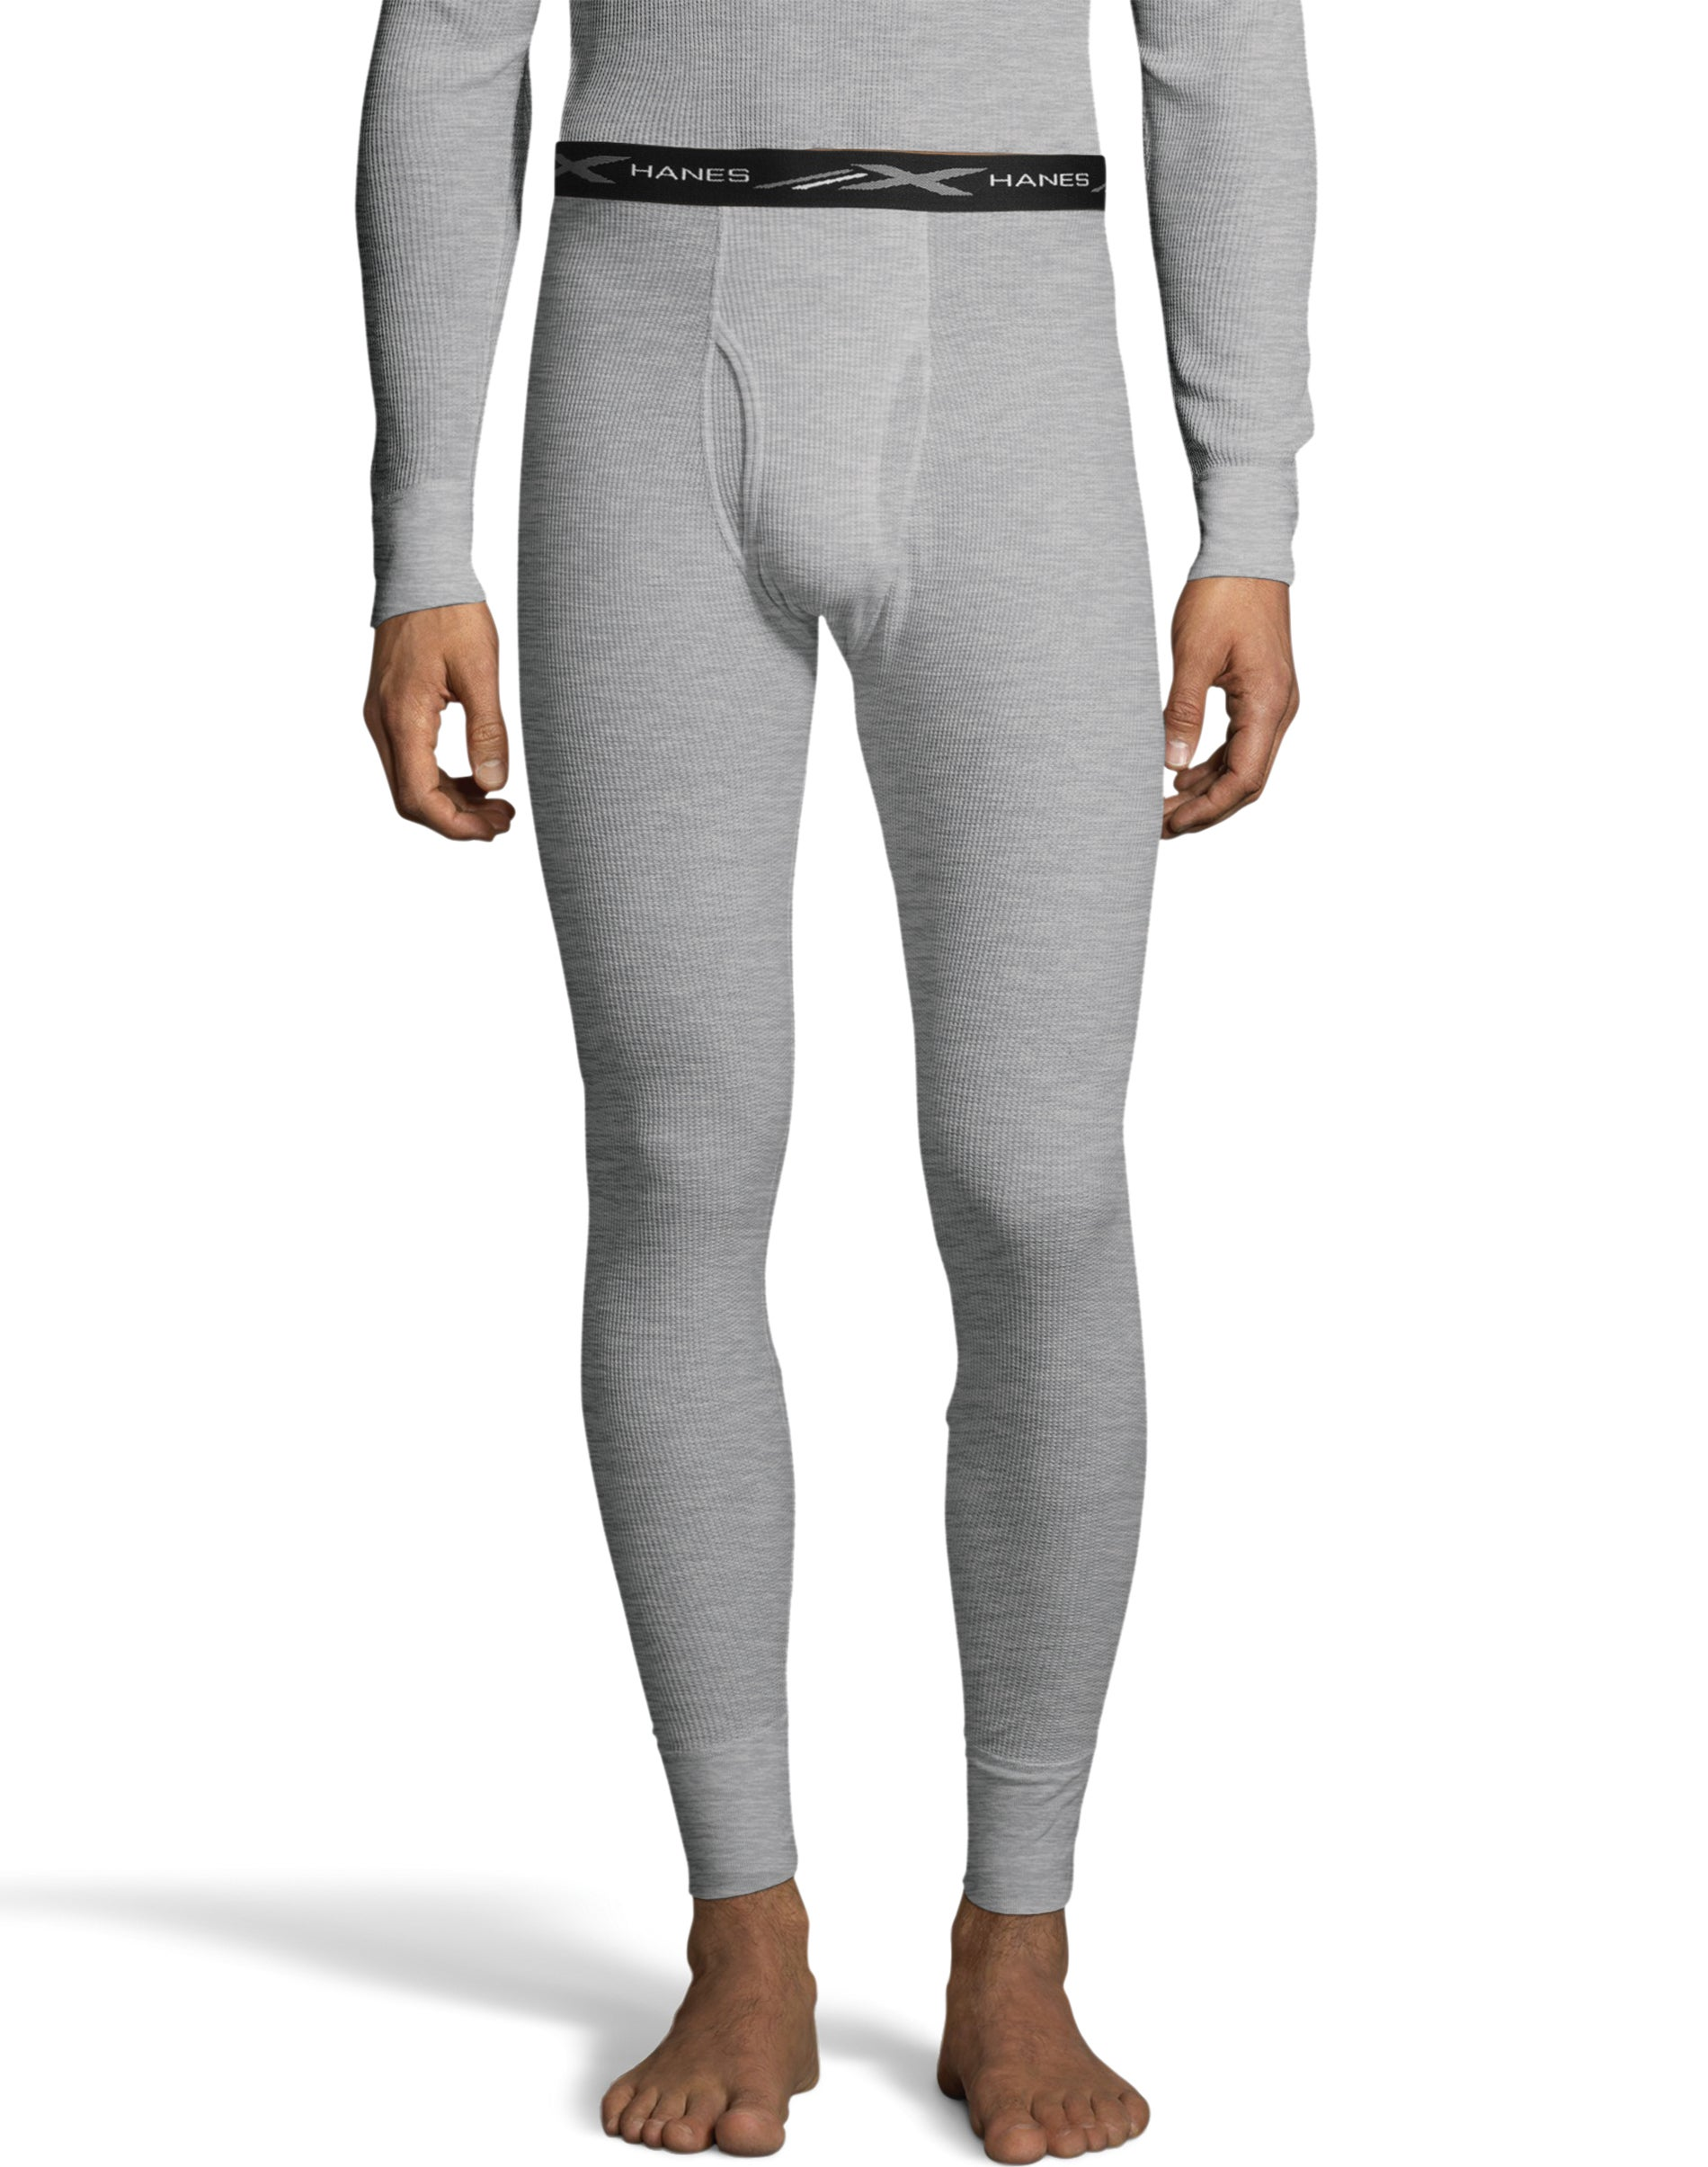 Hanes Mens Waffle Knit Space Dyed Thermal Bottoms